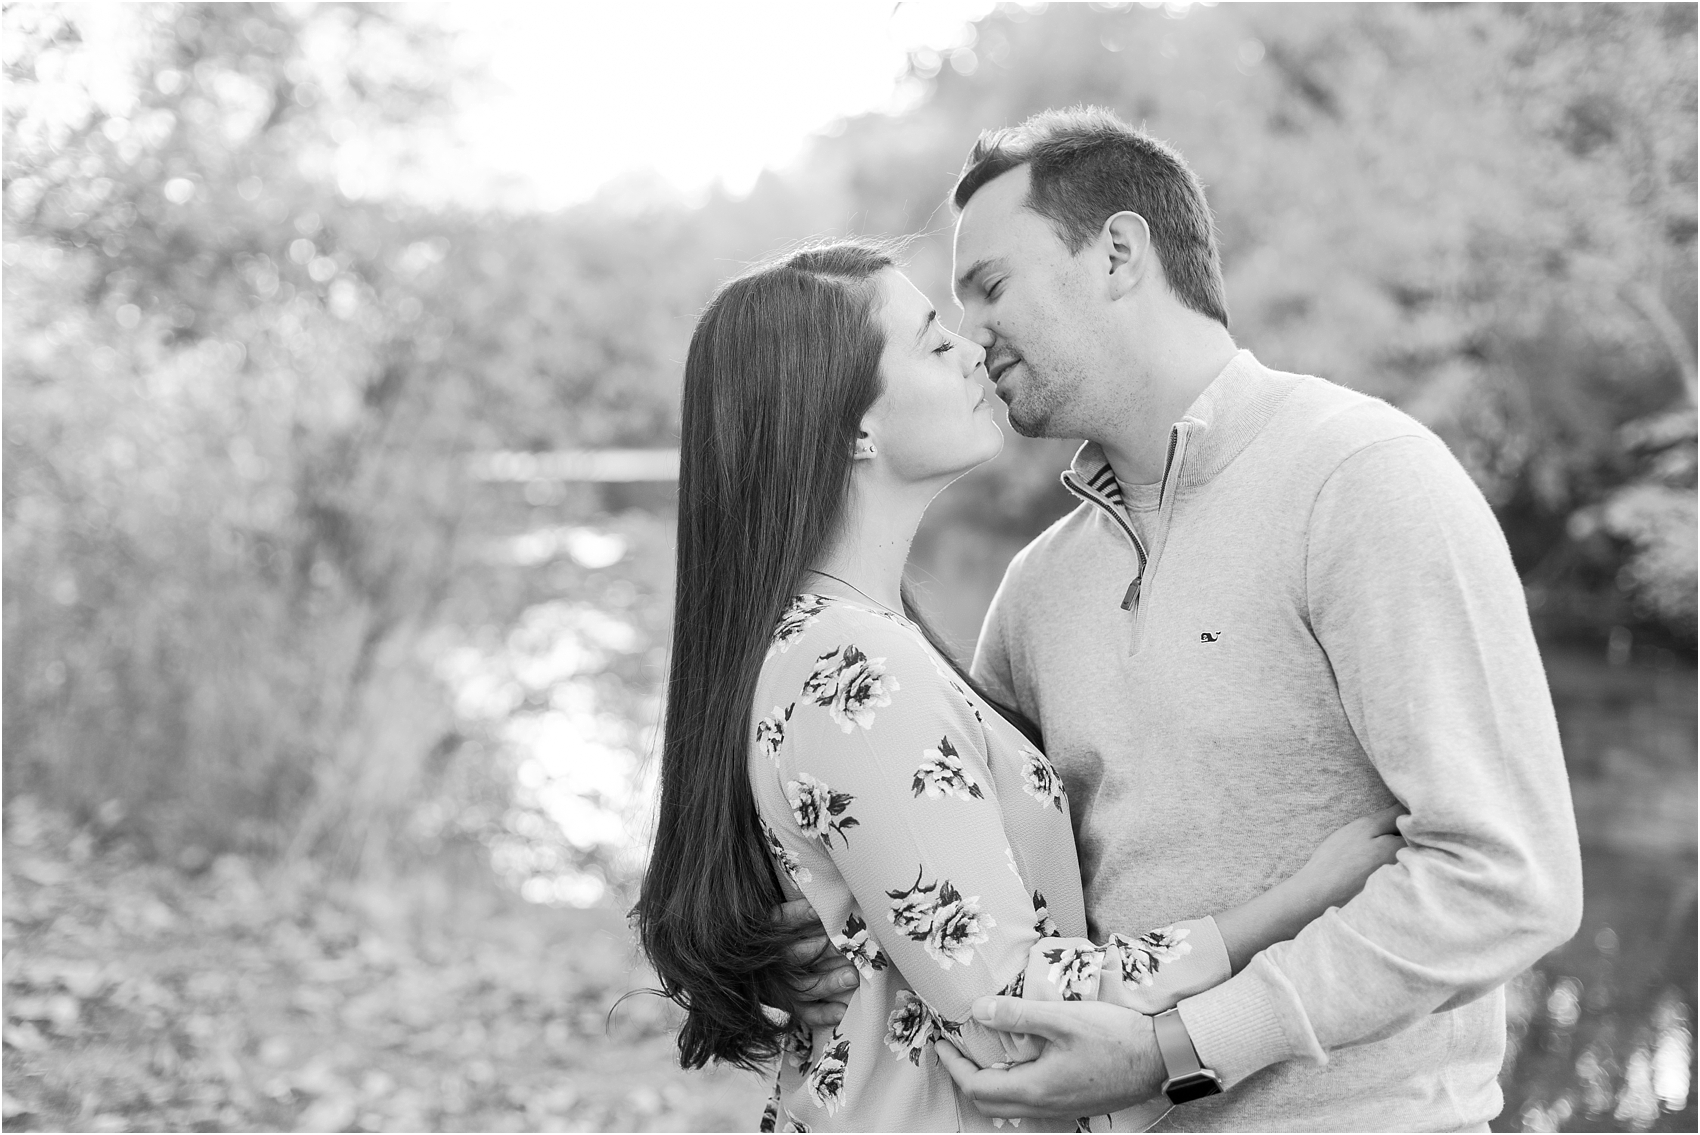 relaxed-autumn-engagement-photos-at-hudson-mills-metropark-in-dexter-mi-by-courtney-carolyn-photography_0042.jpg